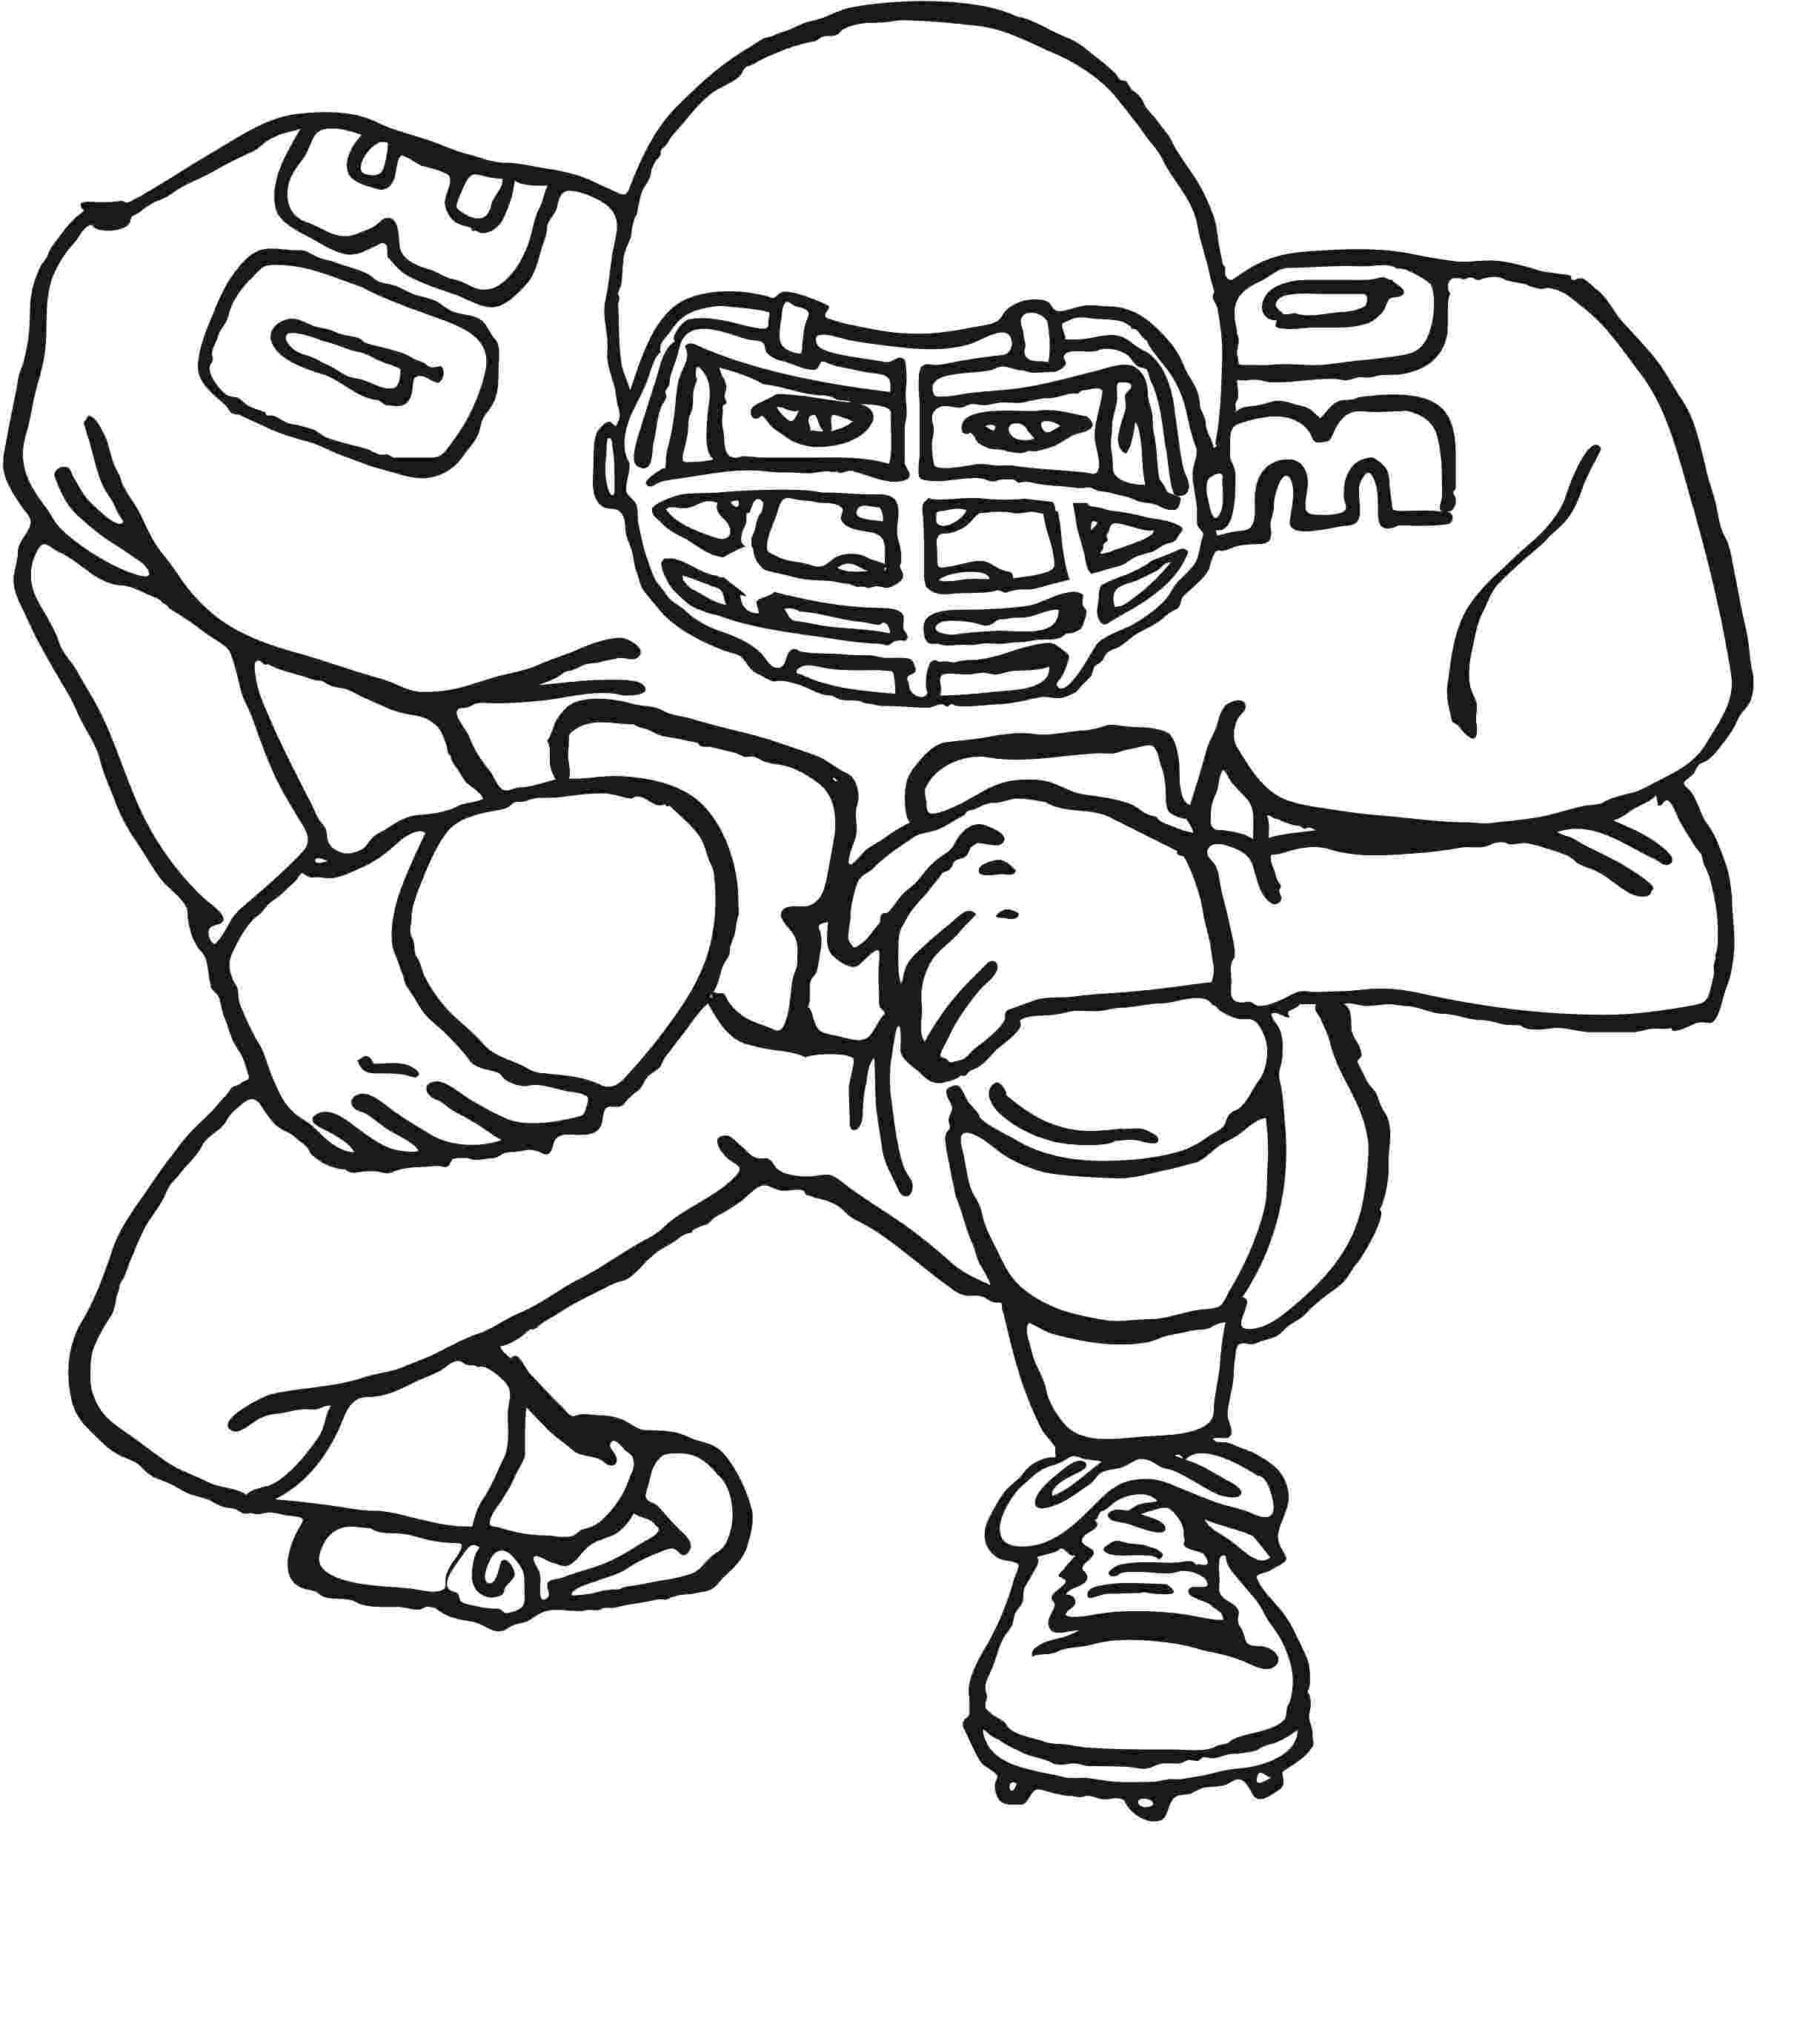 football player coloring sheet football player coloring pages to download and print for free player coloring football sheet